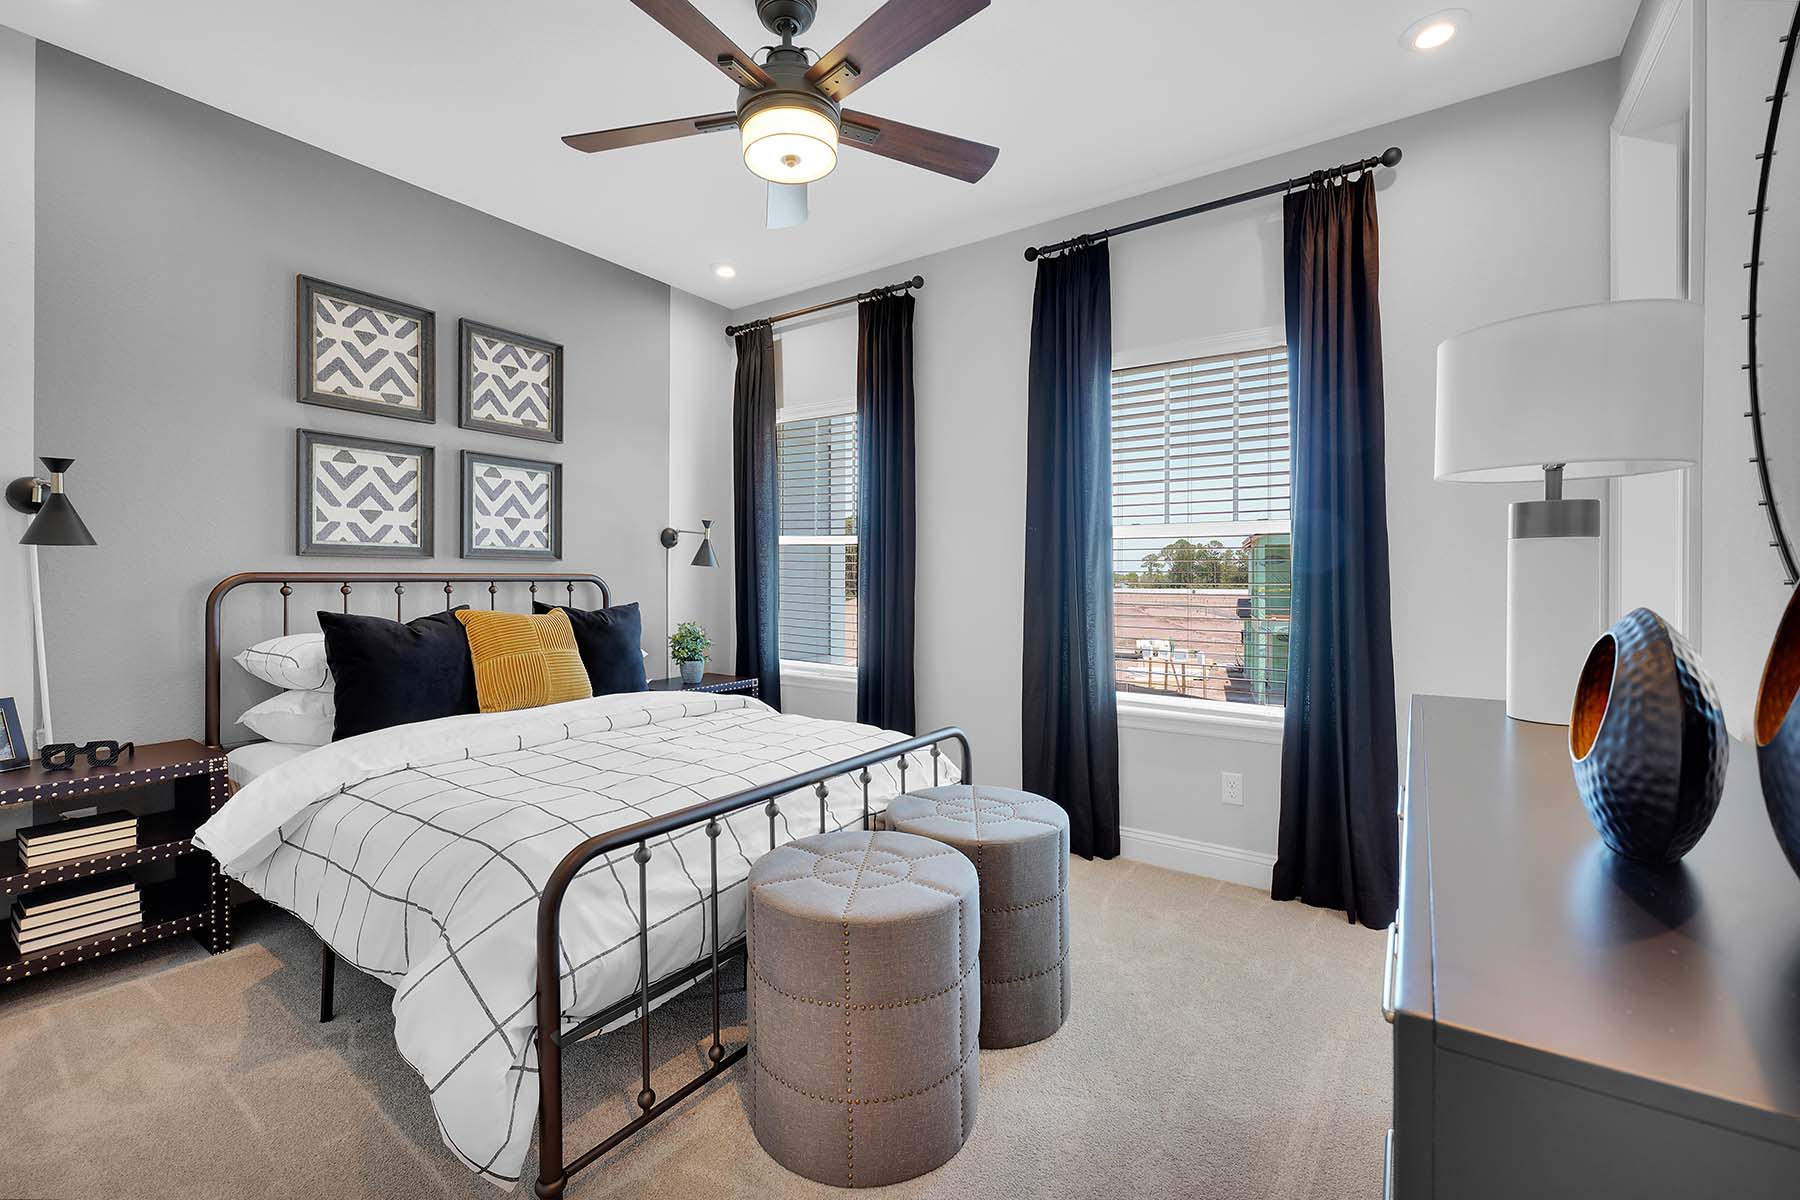 Talise Plan Bedroom at Pablo Cove in Jacksonville Florida by Mattamy Homes